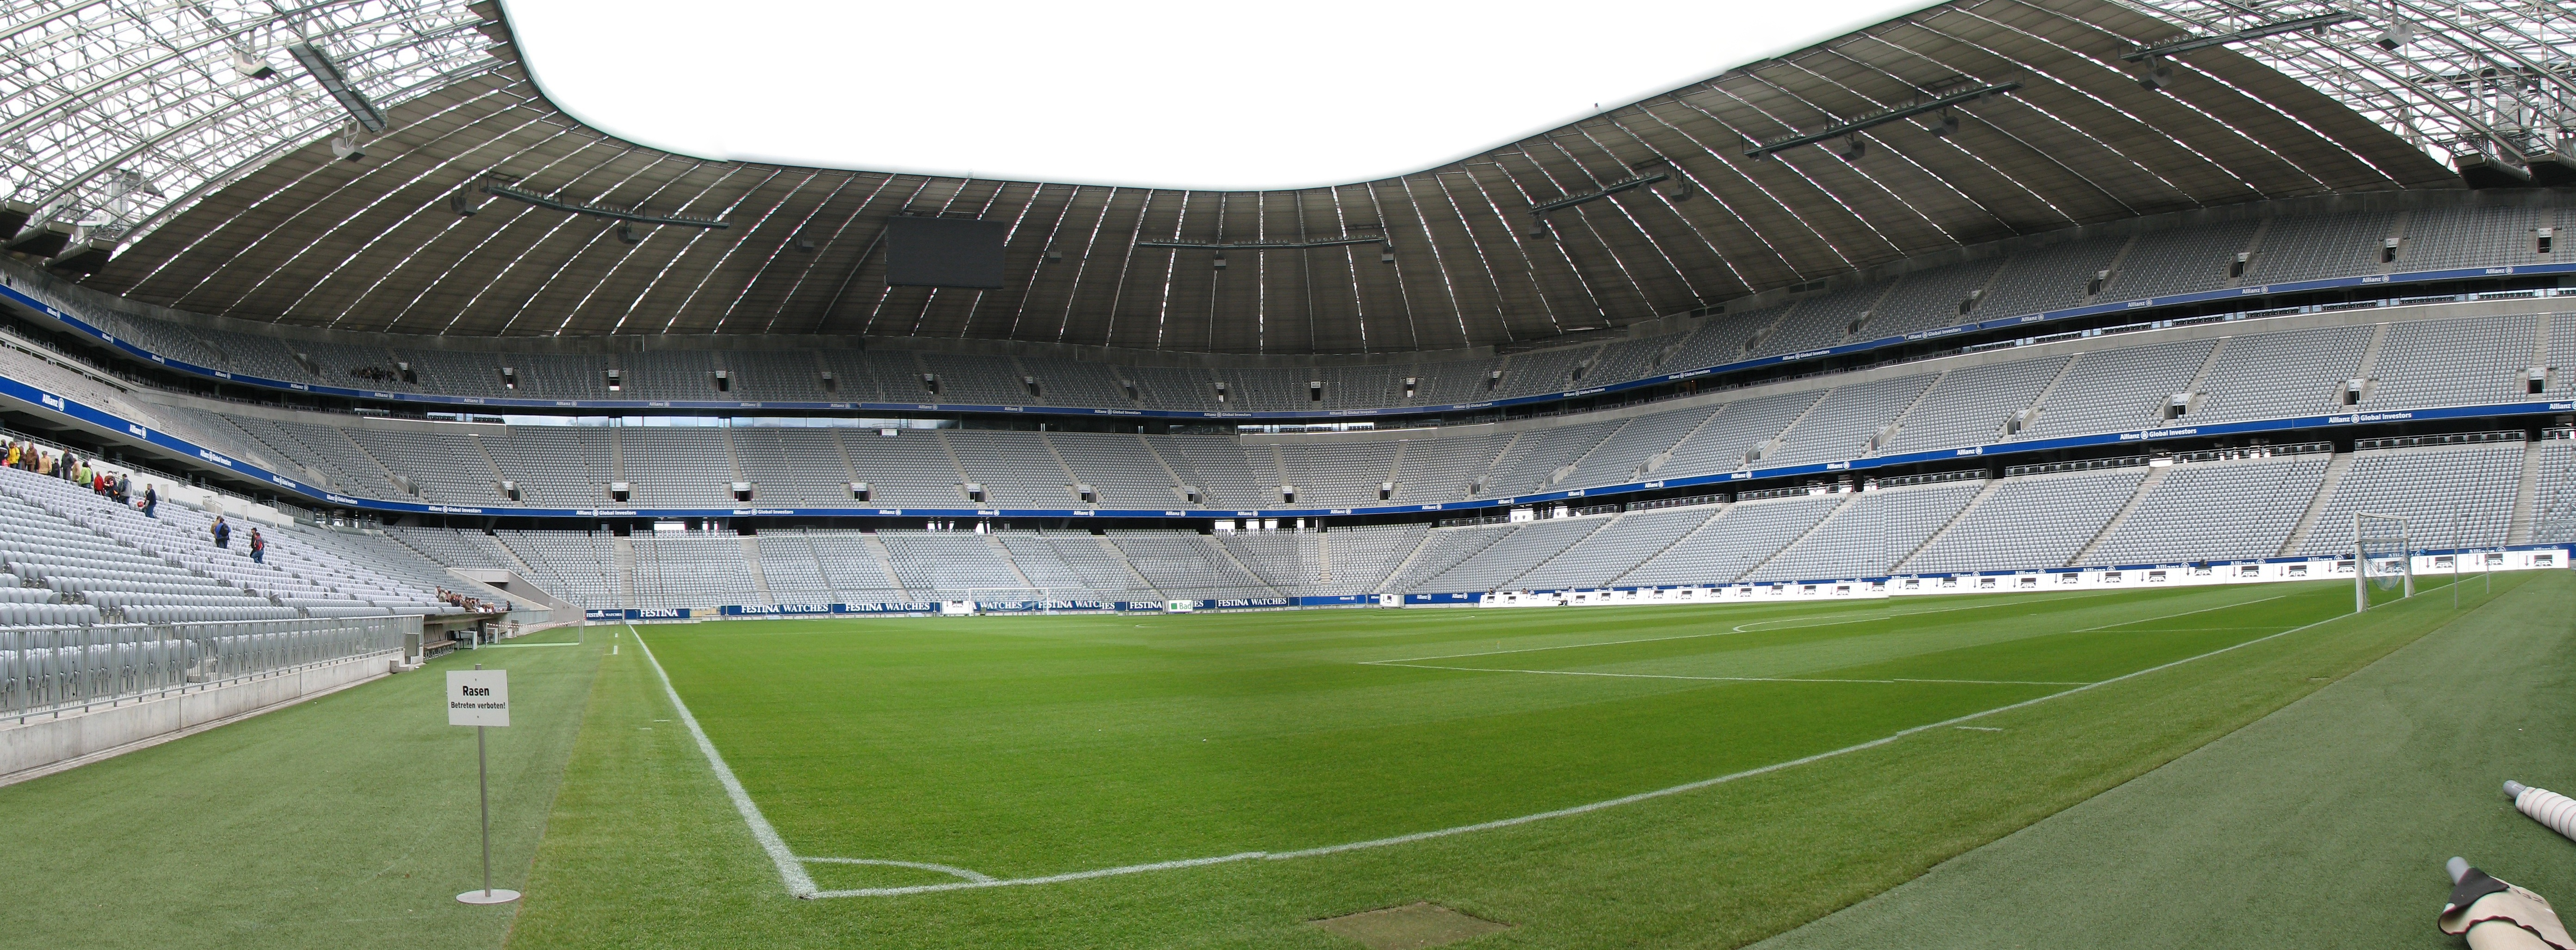 file allianz arena playing field wikimedia. Black Bedroom Furniture Sets. Home Design Ideas